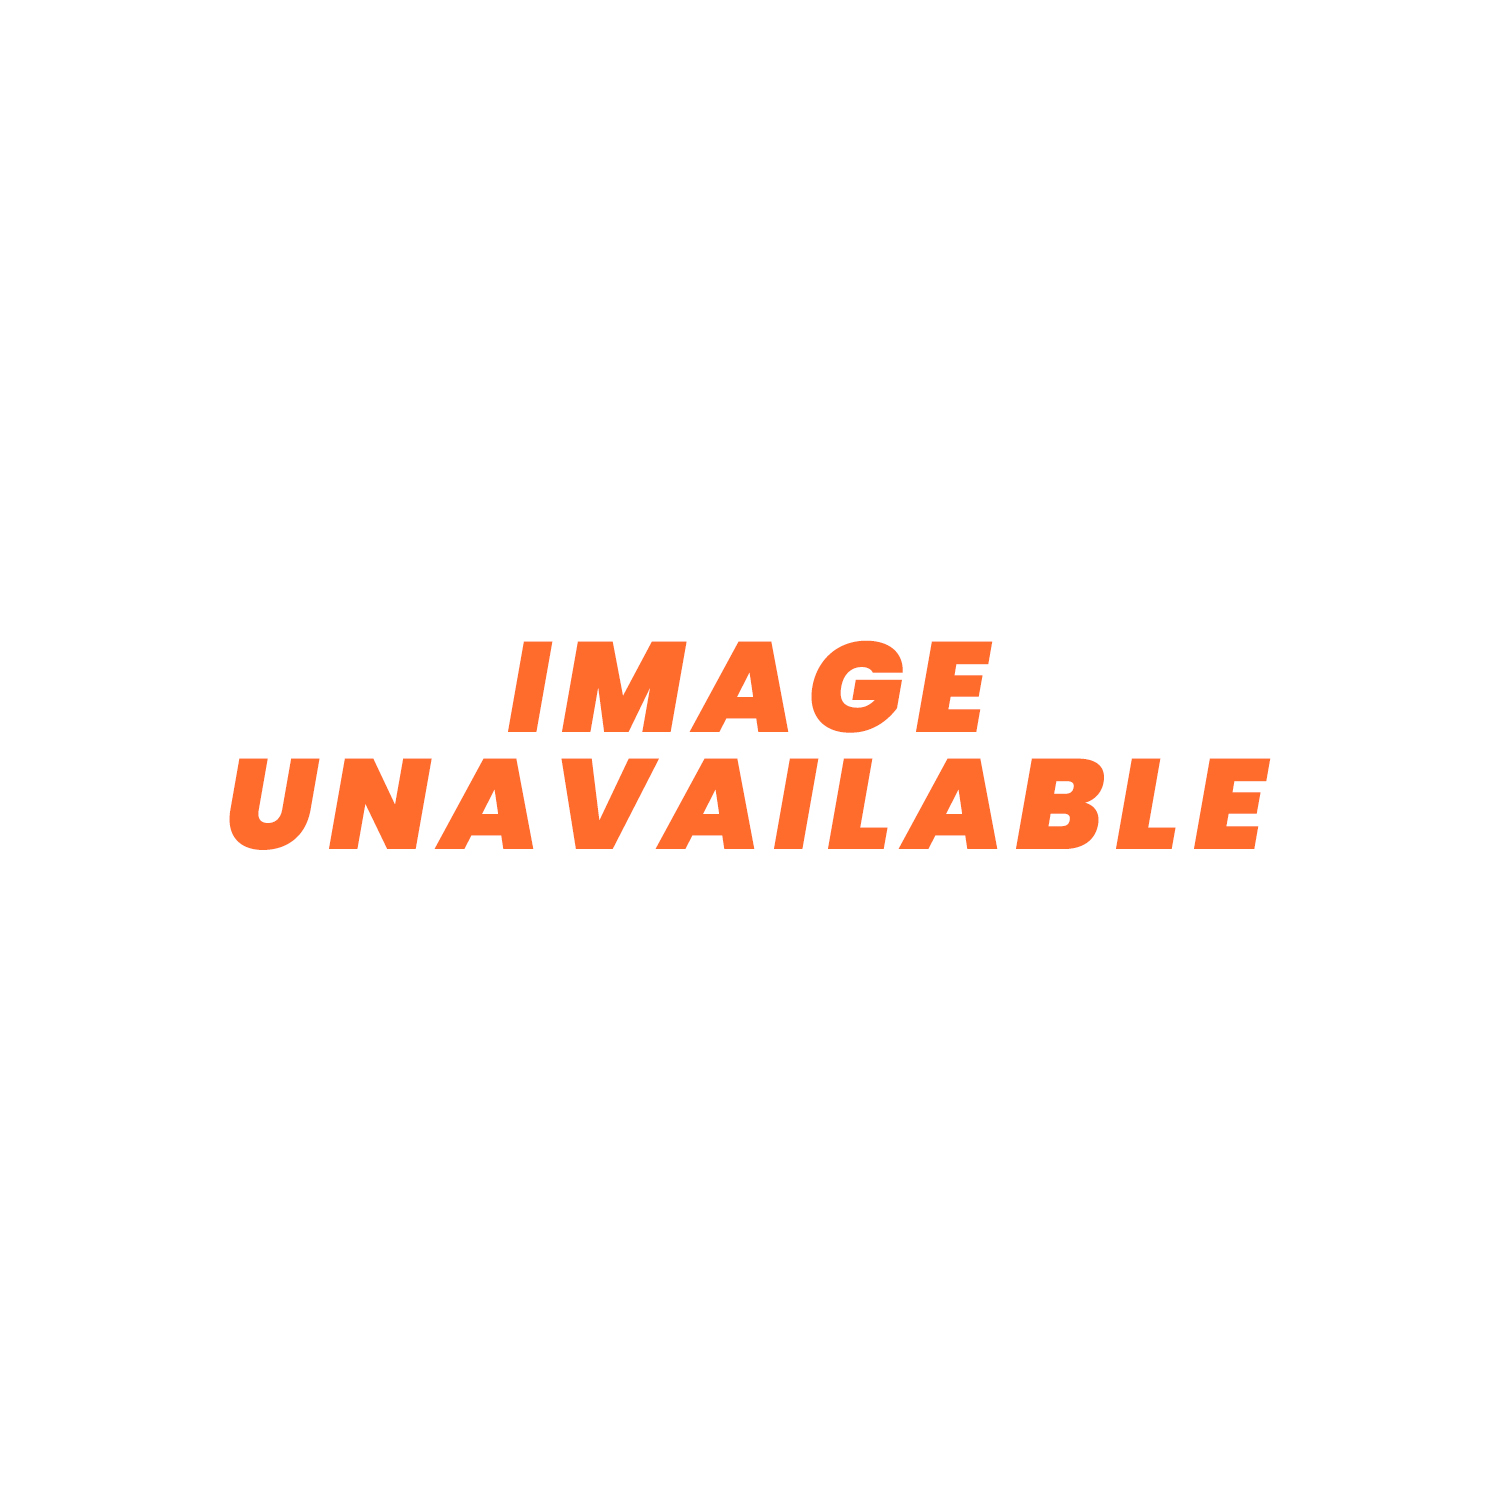 Jubilee 'O' Clip 304 Stainless Steel 14 - 17mm Dia Hose Clamp